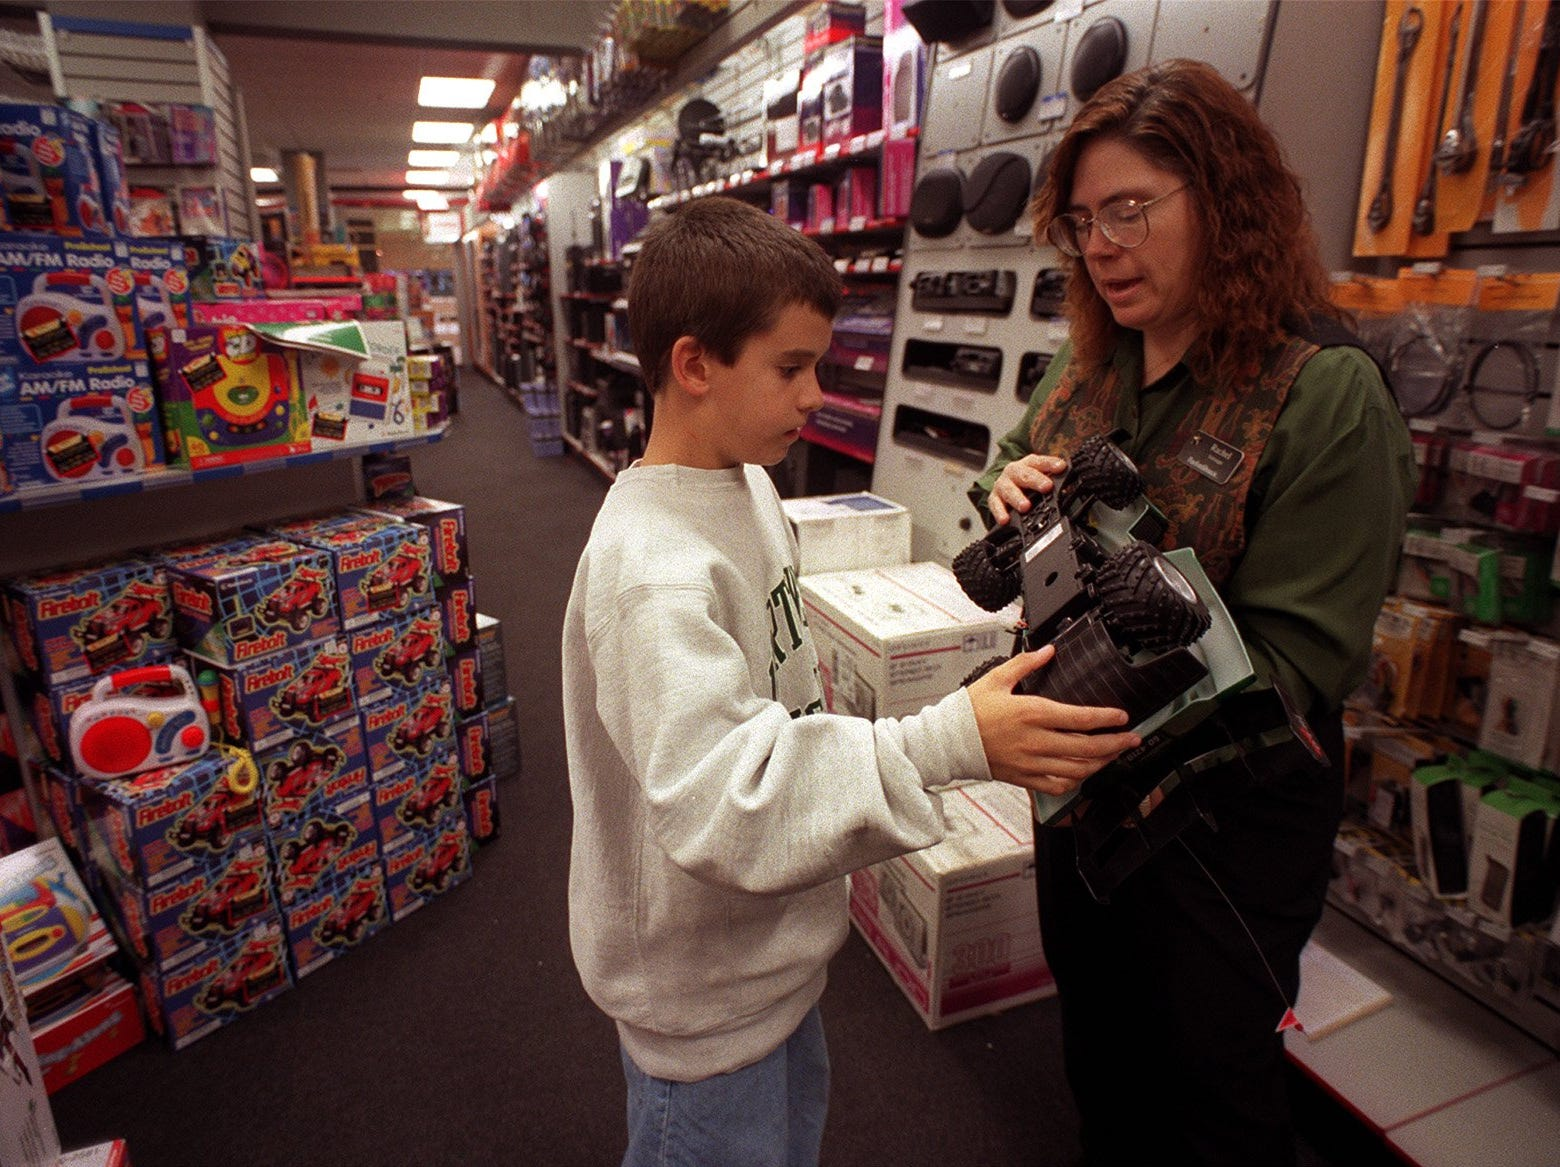 Daniel Schuelzky, 10, of West Des Moines takes a look at a radio controlled car that Rachel Eveland, manager of Radio Shack, was showing him on Oct. 28, 1998.